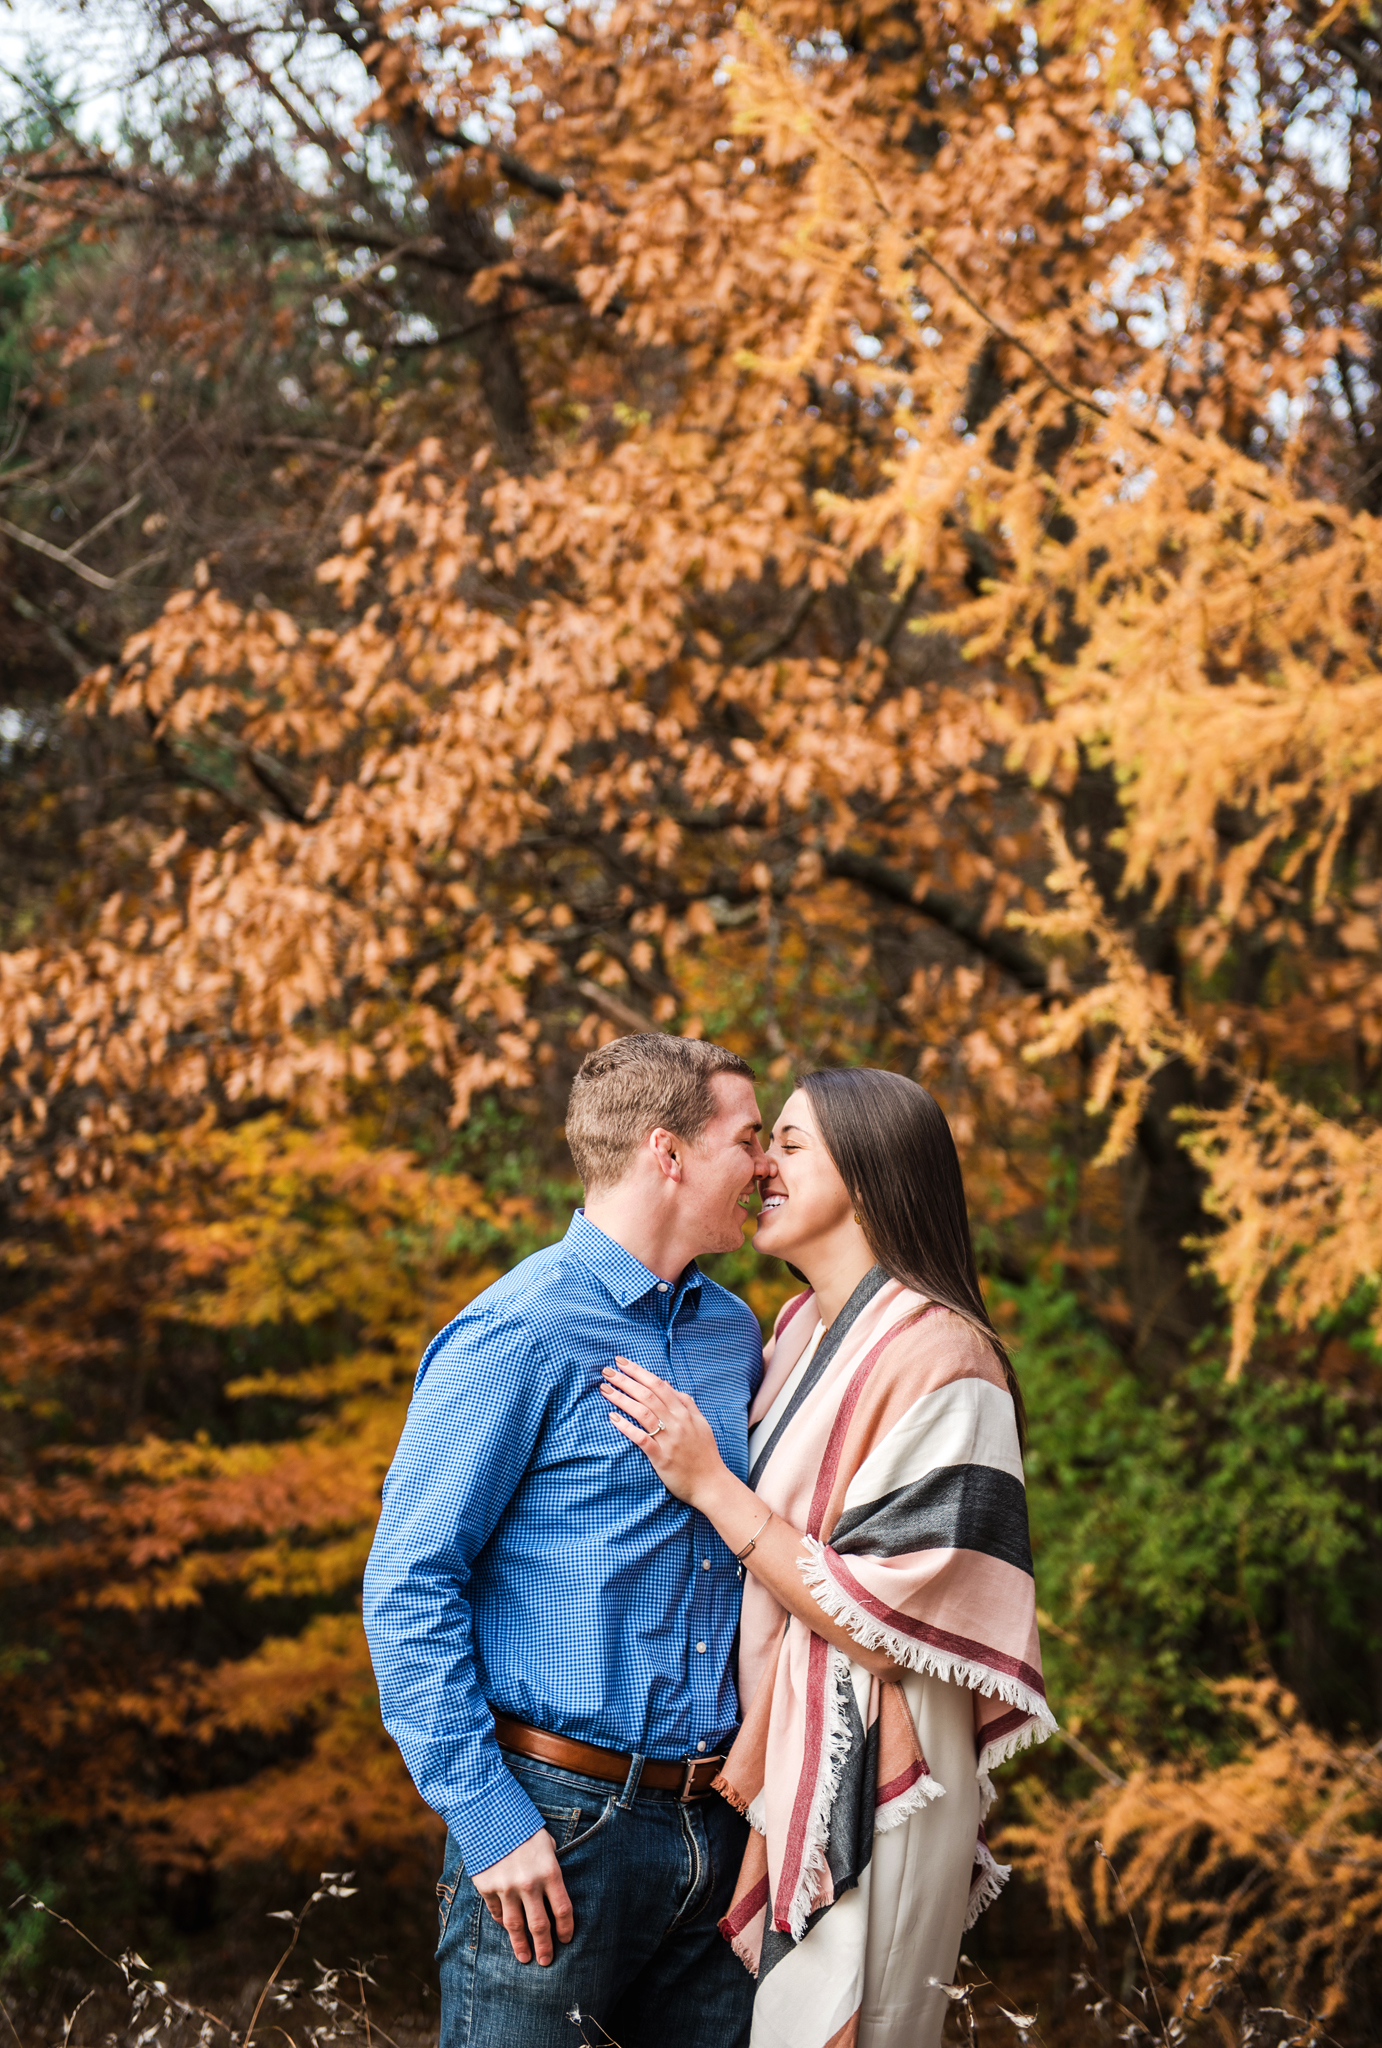 Mendon_Ponds_Park_Rochester_Engagement_Session_JILL_STUDIO_Rochester_NY_Photographer_DSC_0319.jpg